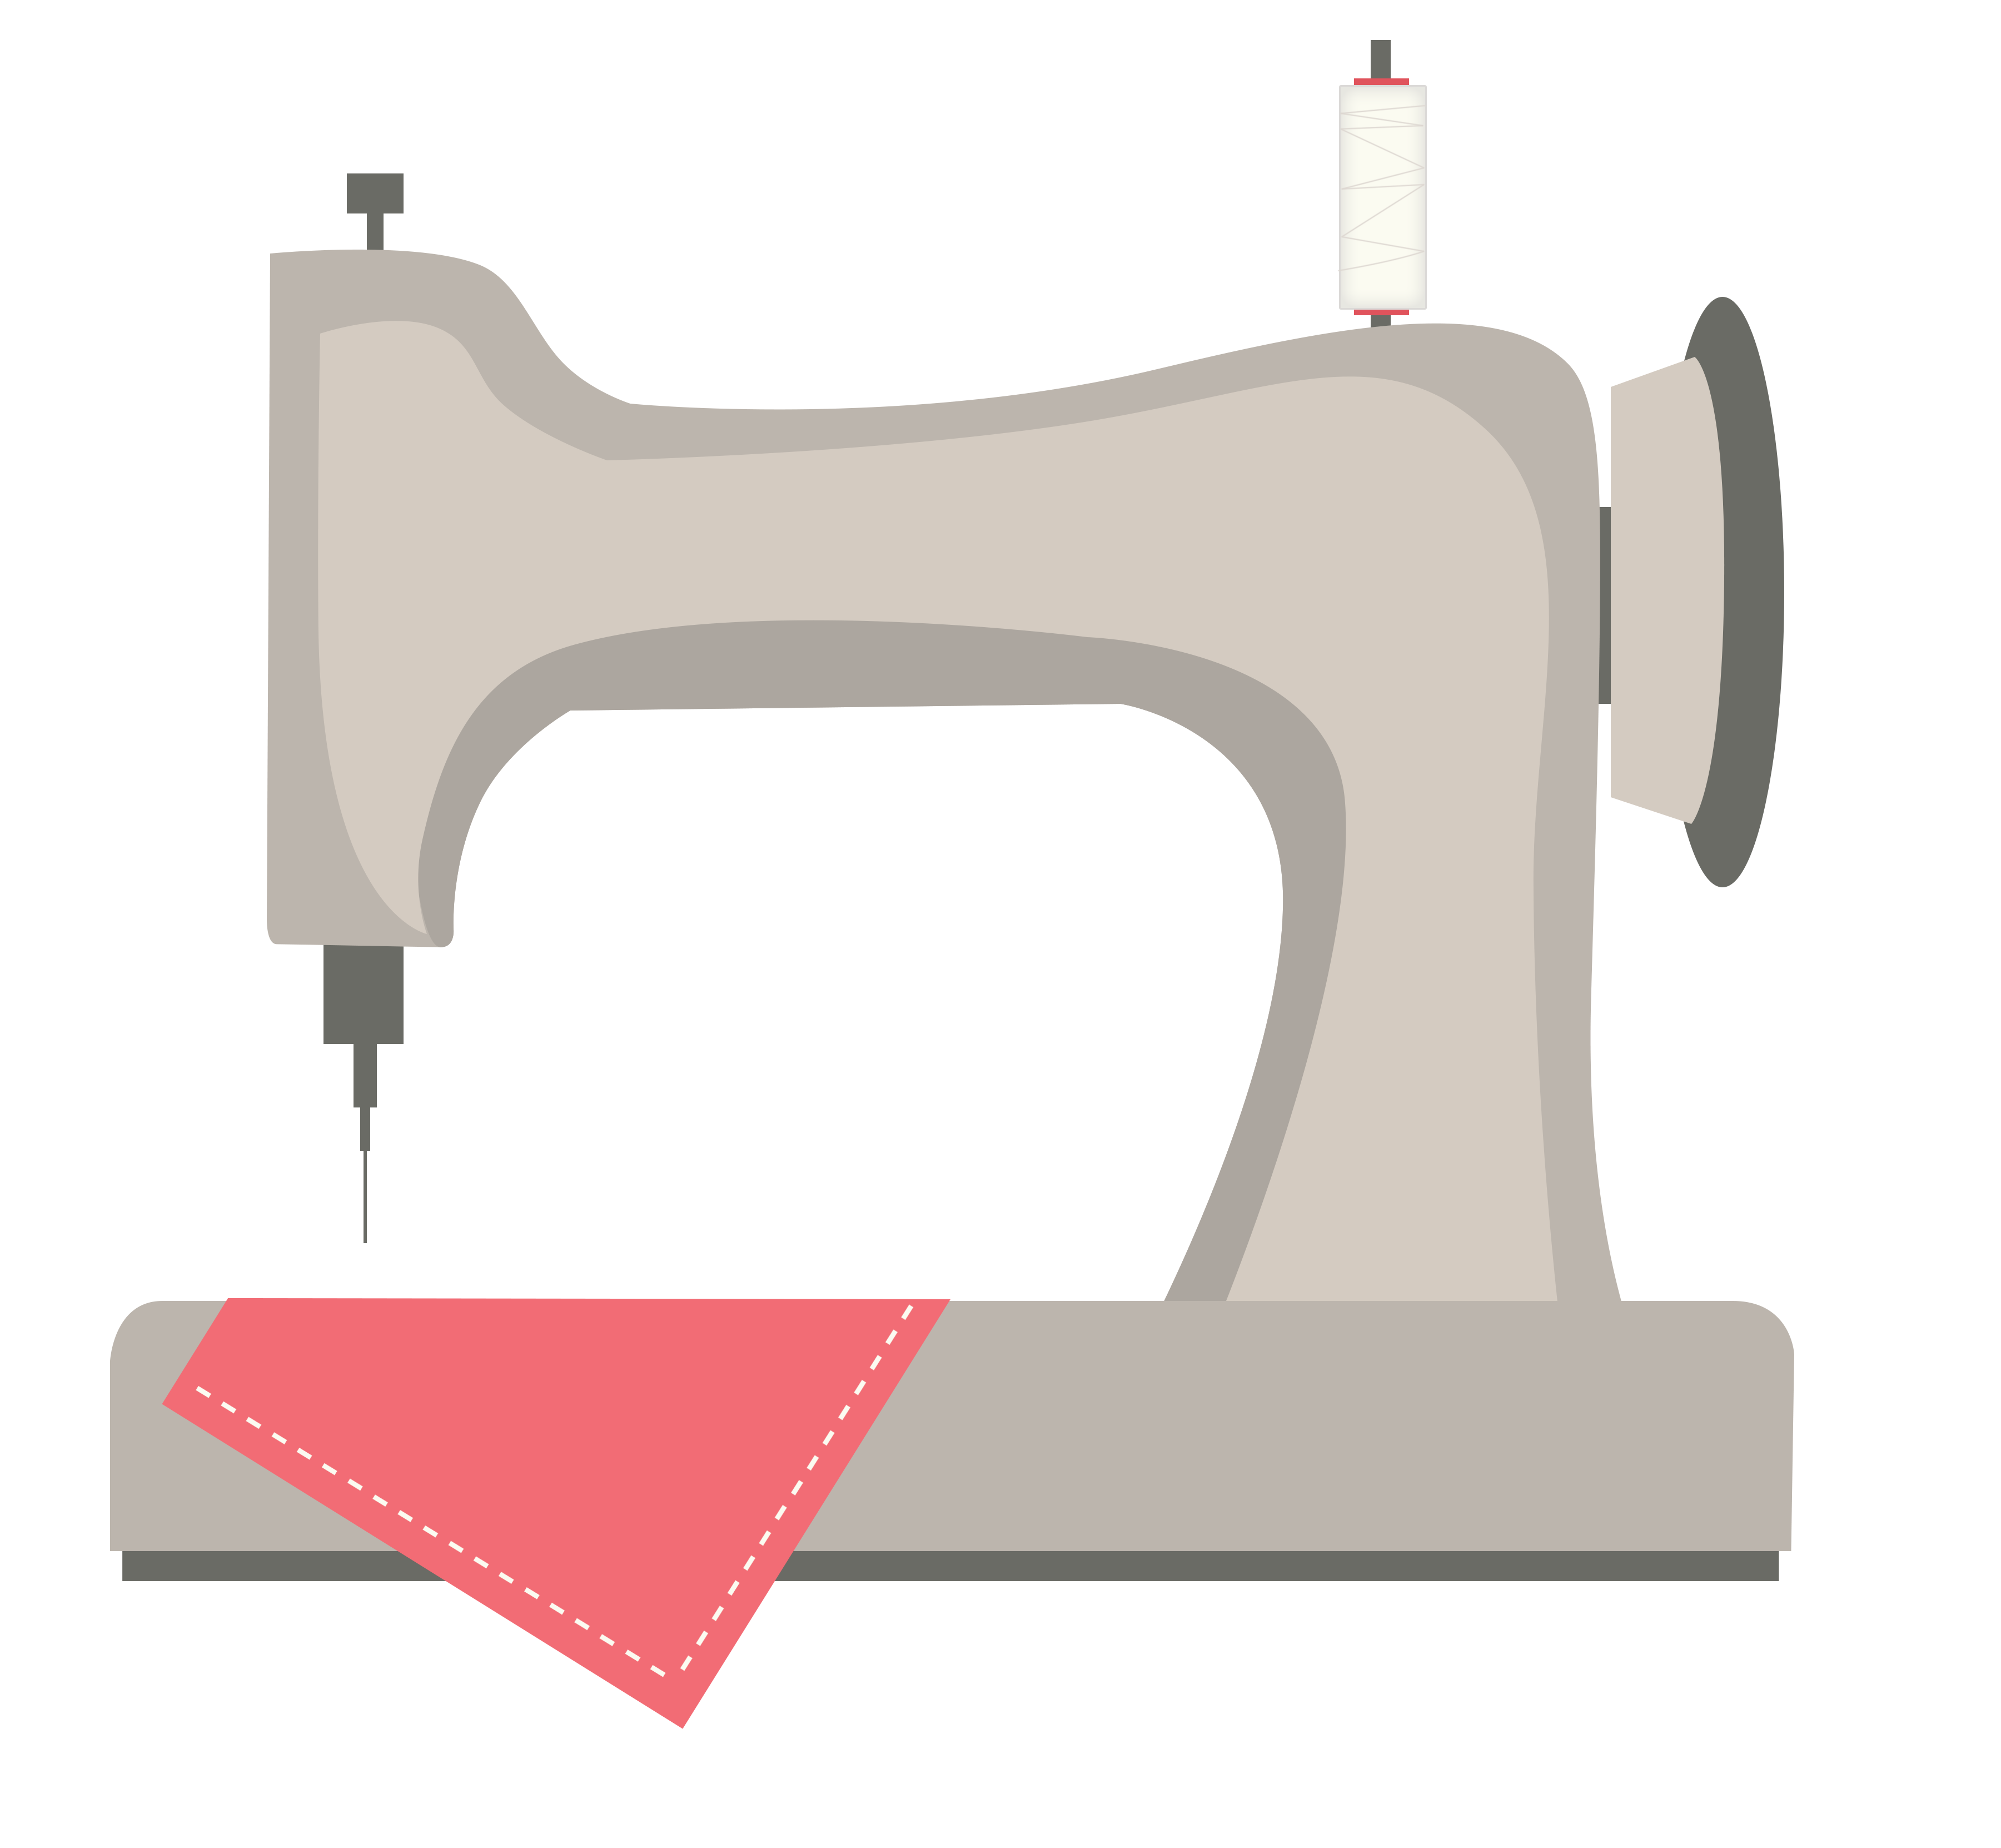 Sewing Machine Png & Free Sewing Machine.png Transparent.